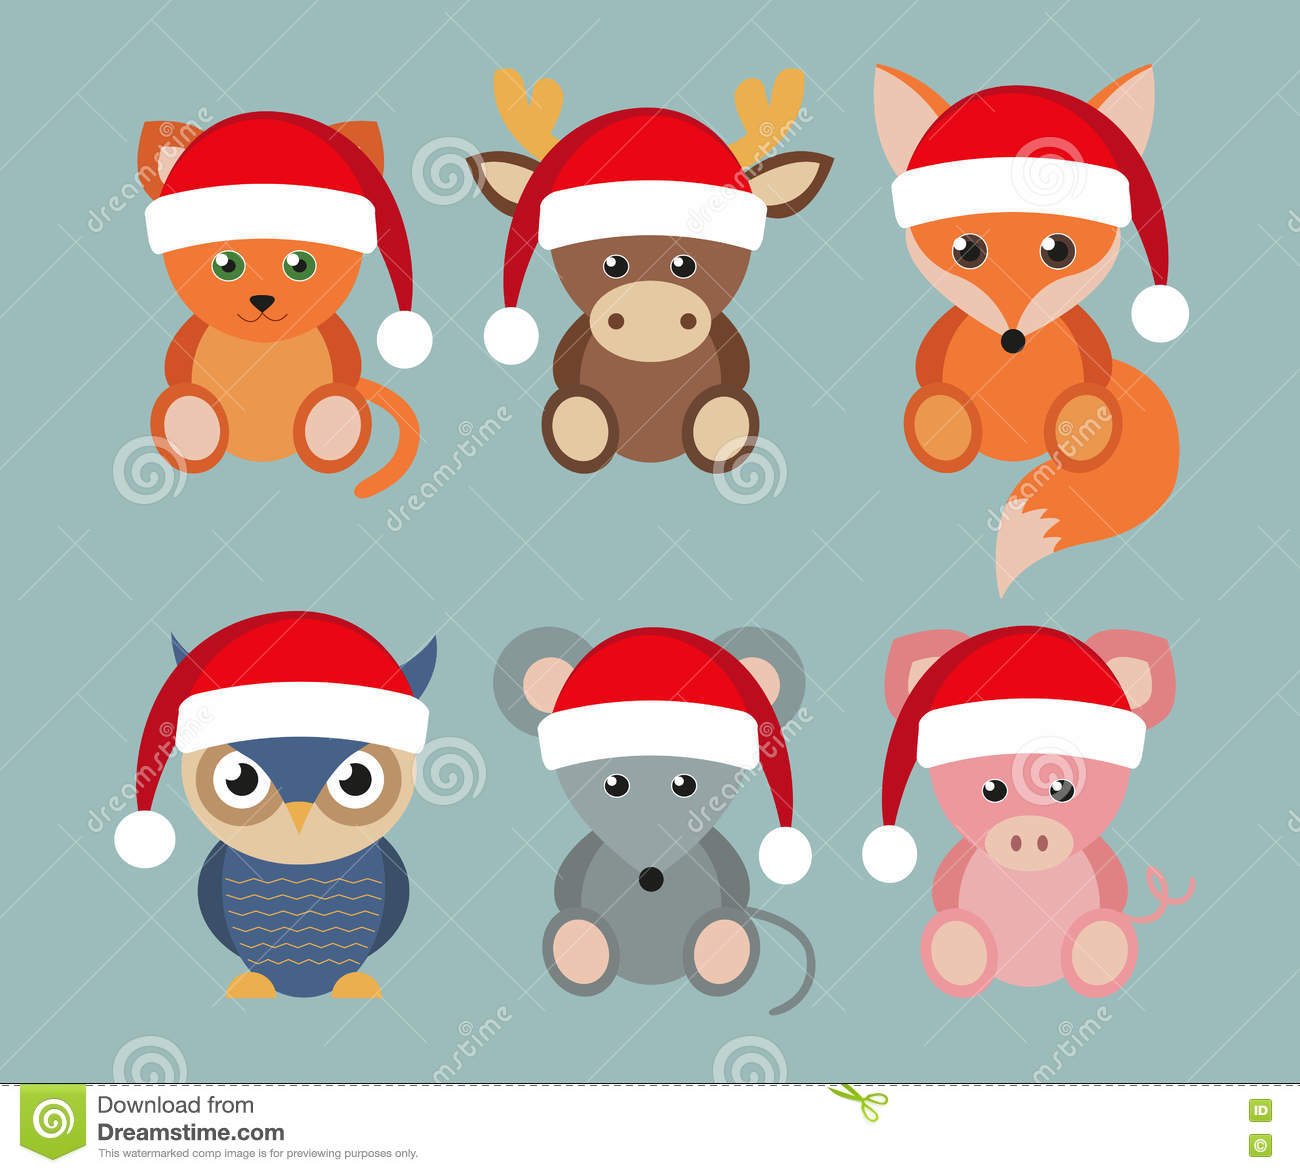 Fox with a hat new year or christmas animal isolated on white - Animals Cartoon Christmas Flat Funny New Santa Set Style Year